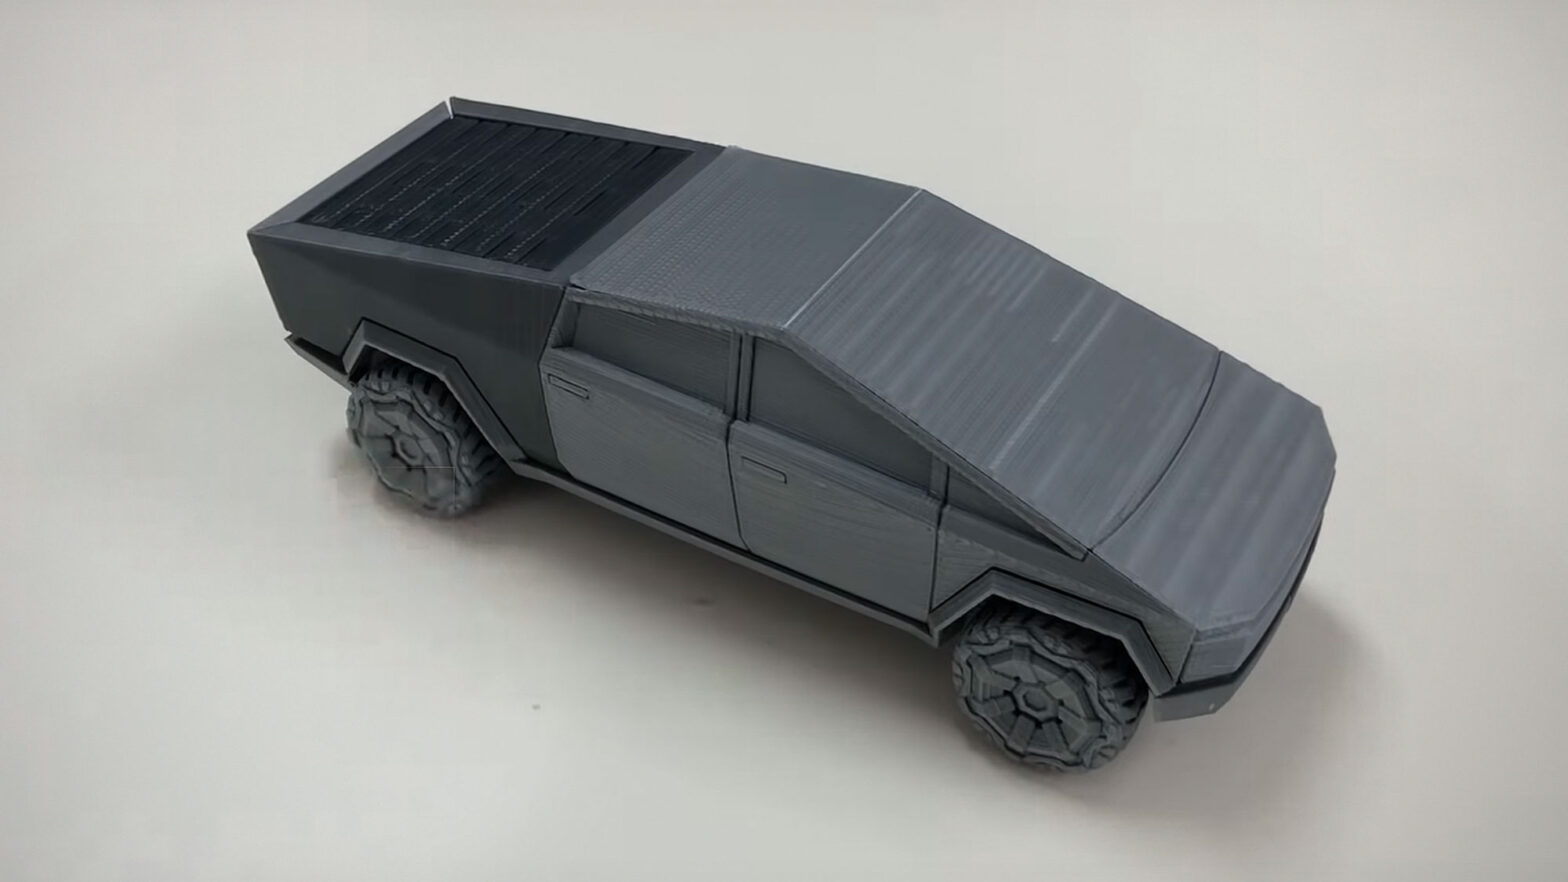 3D Printed Foldable Tesla Cybertruck Model